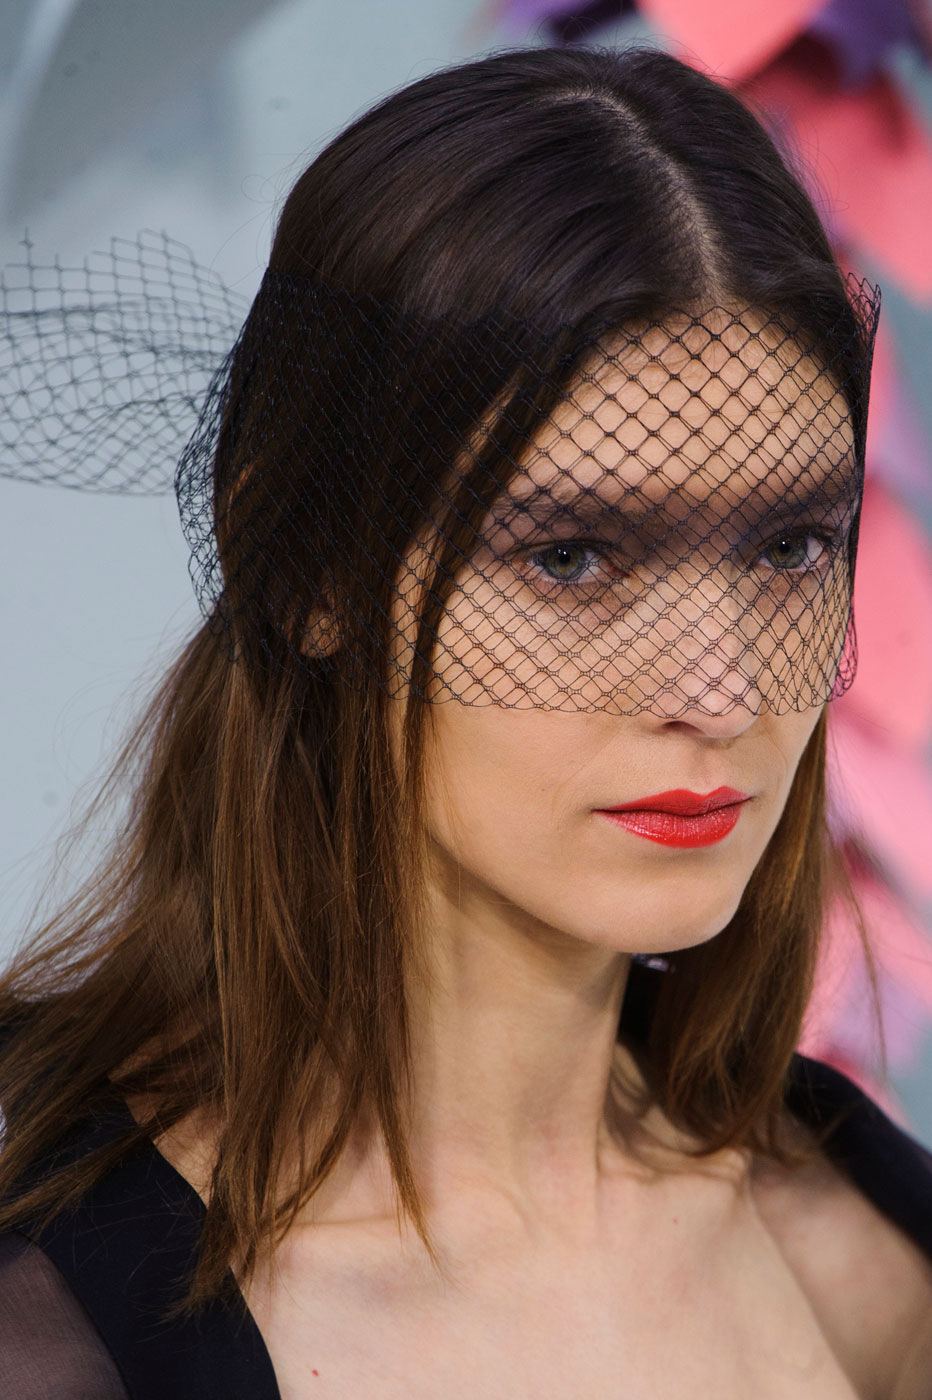 Chanel-fashion-runway-show-close-ups-haute-couture-paris-spring-summer-2015-the-impression-064